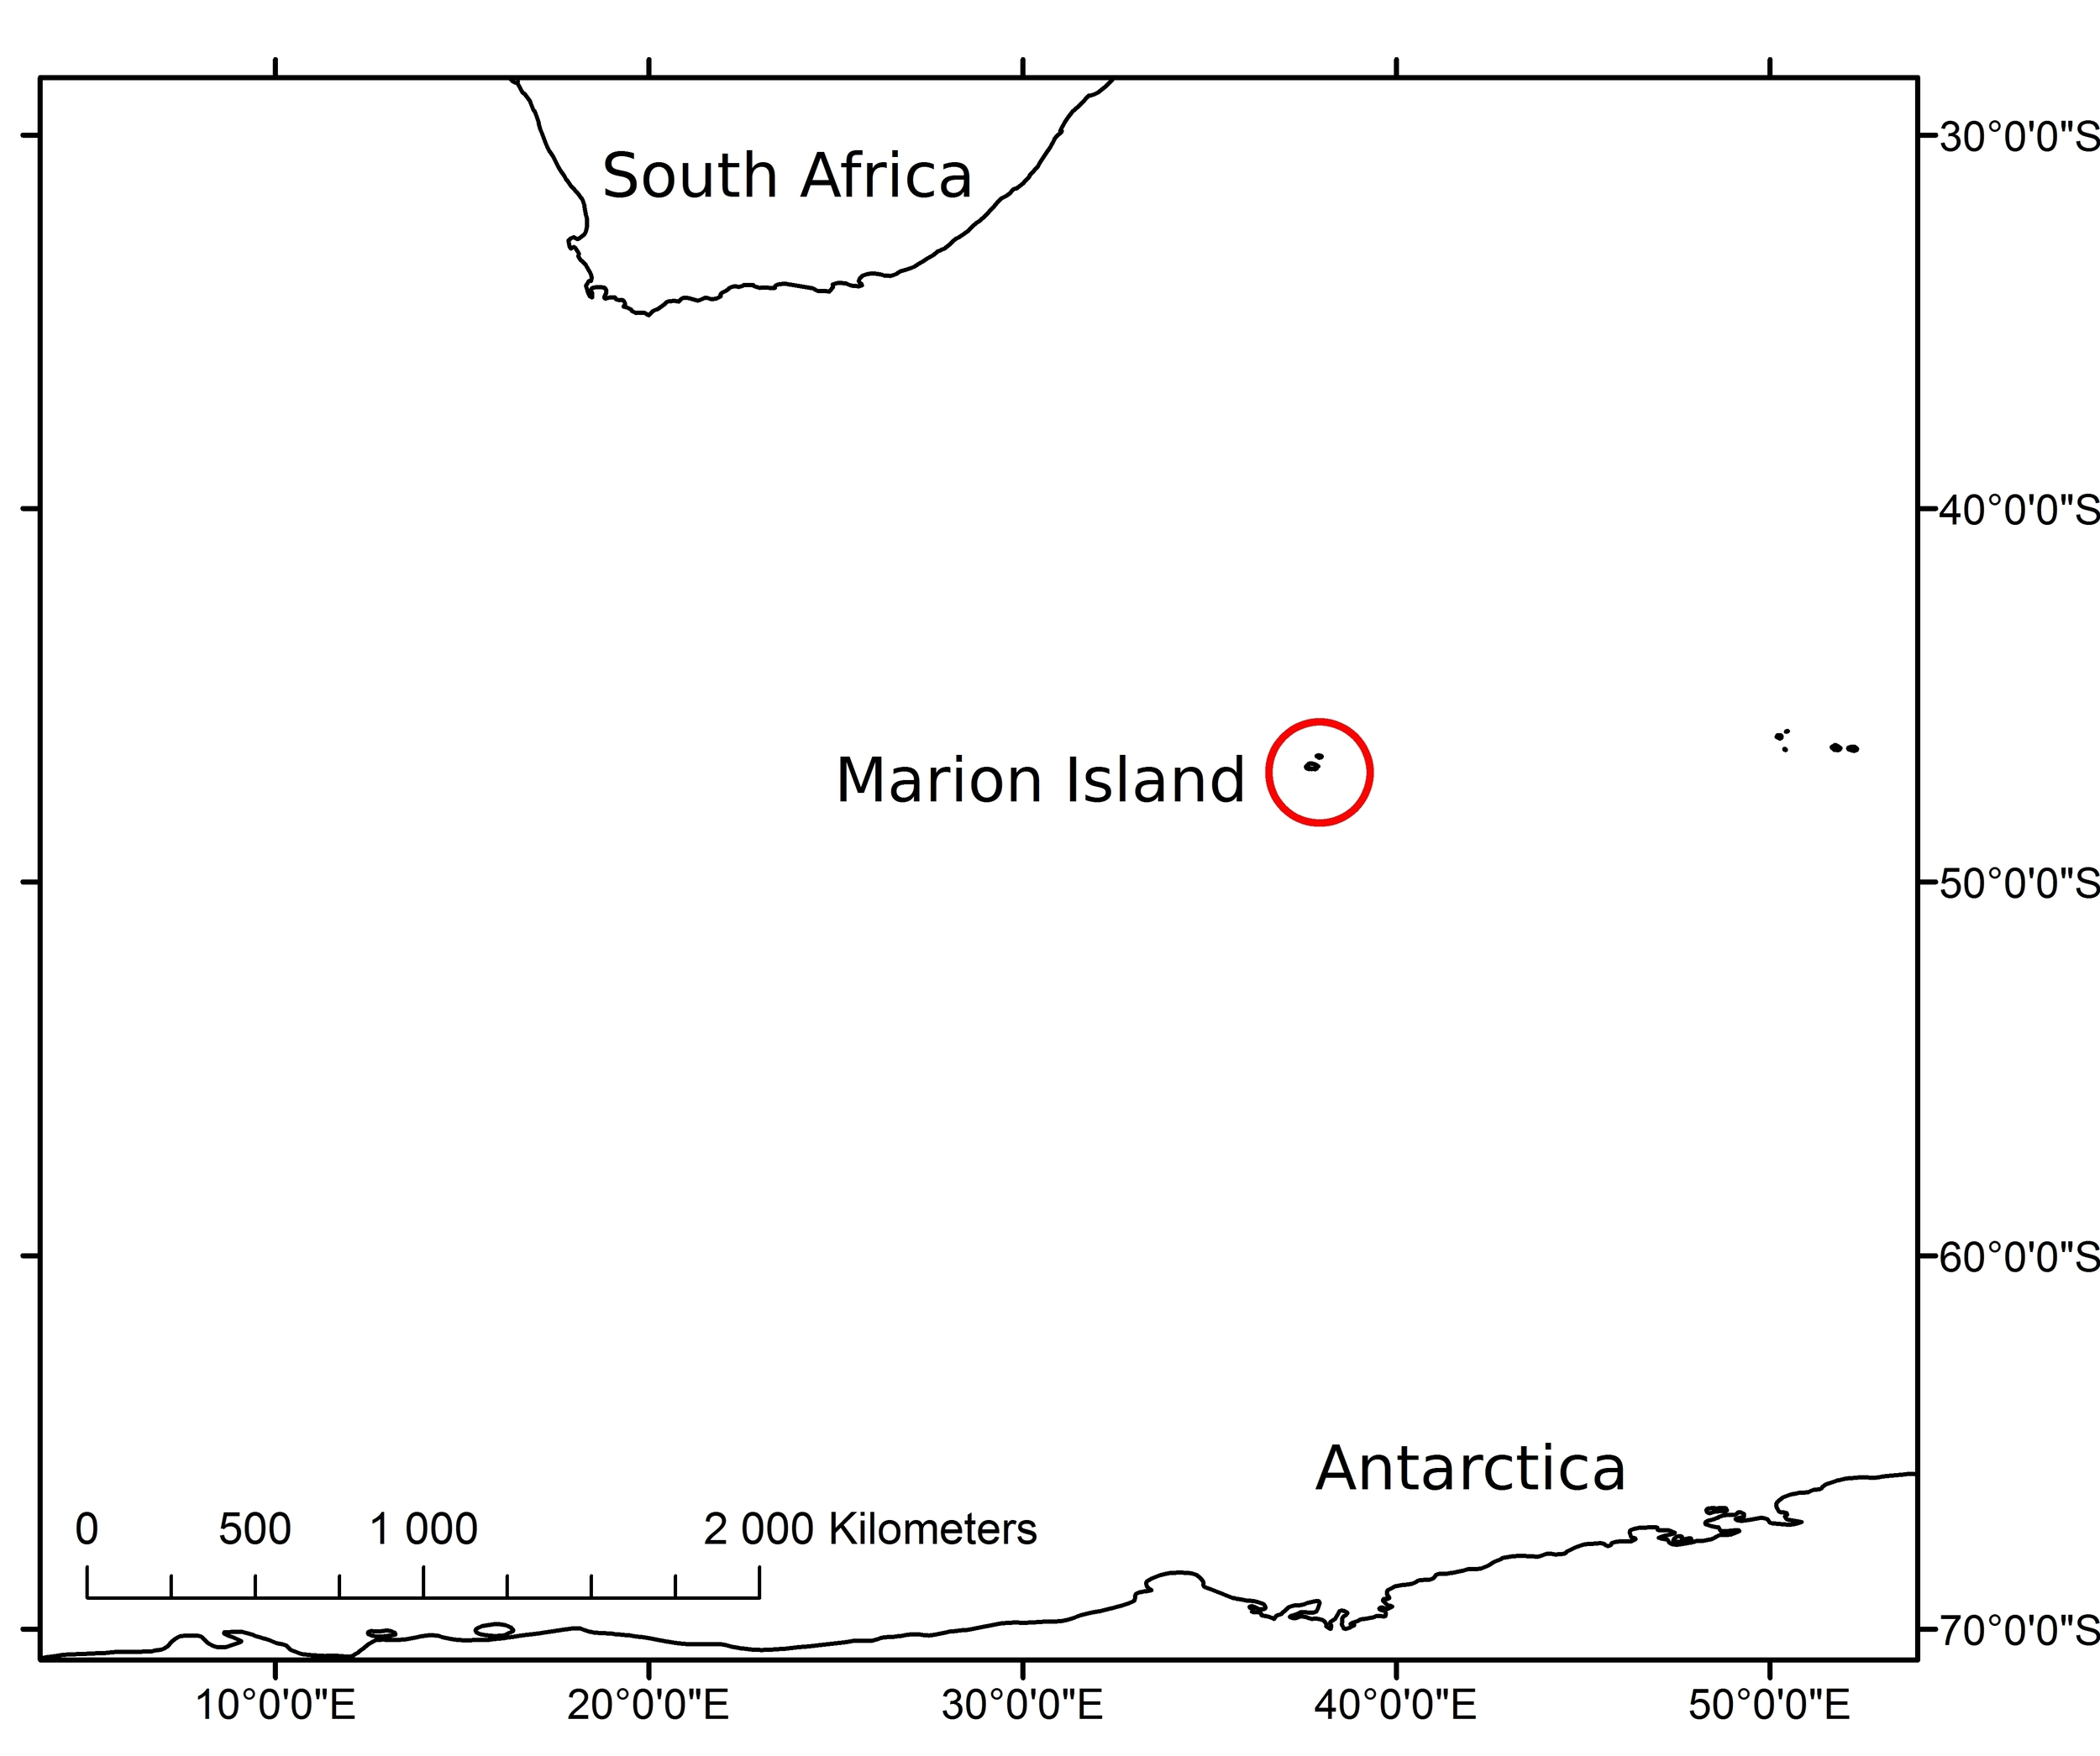 Figure 1: The position of Marion Island in relation to South Africa and Antarctica